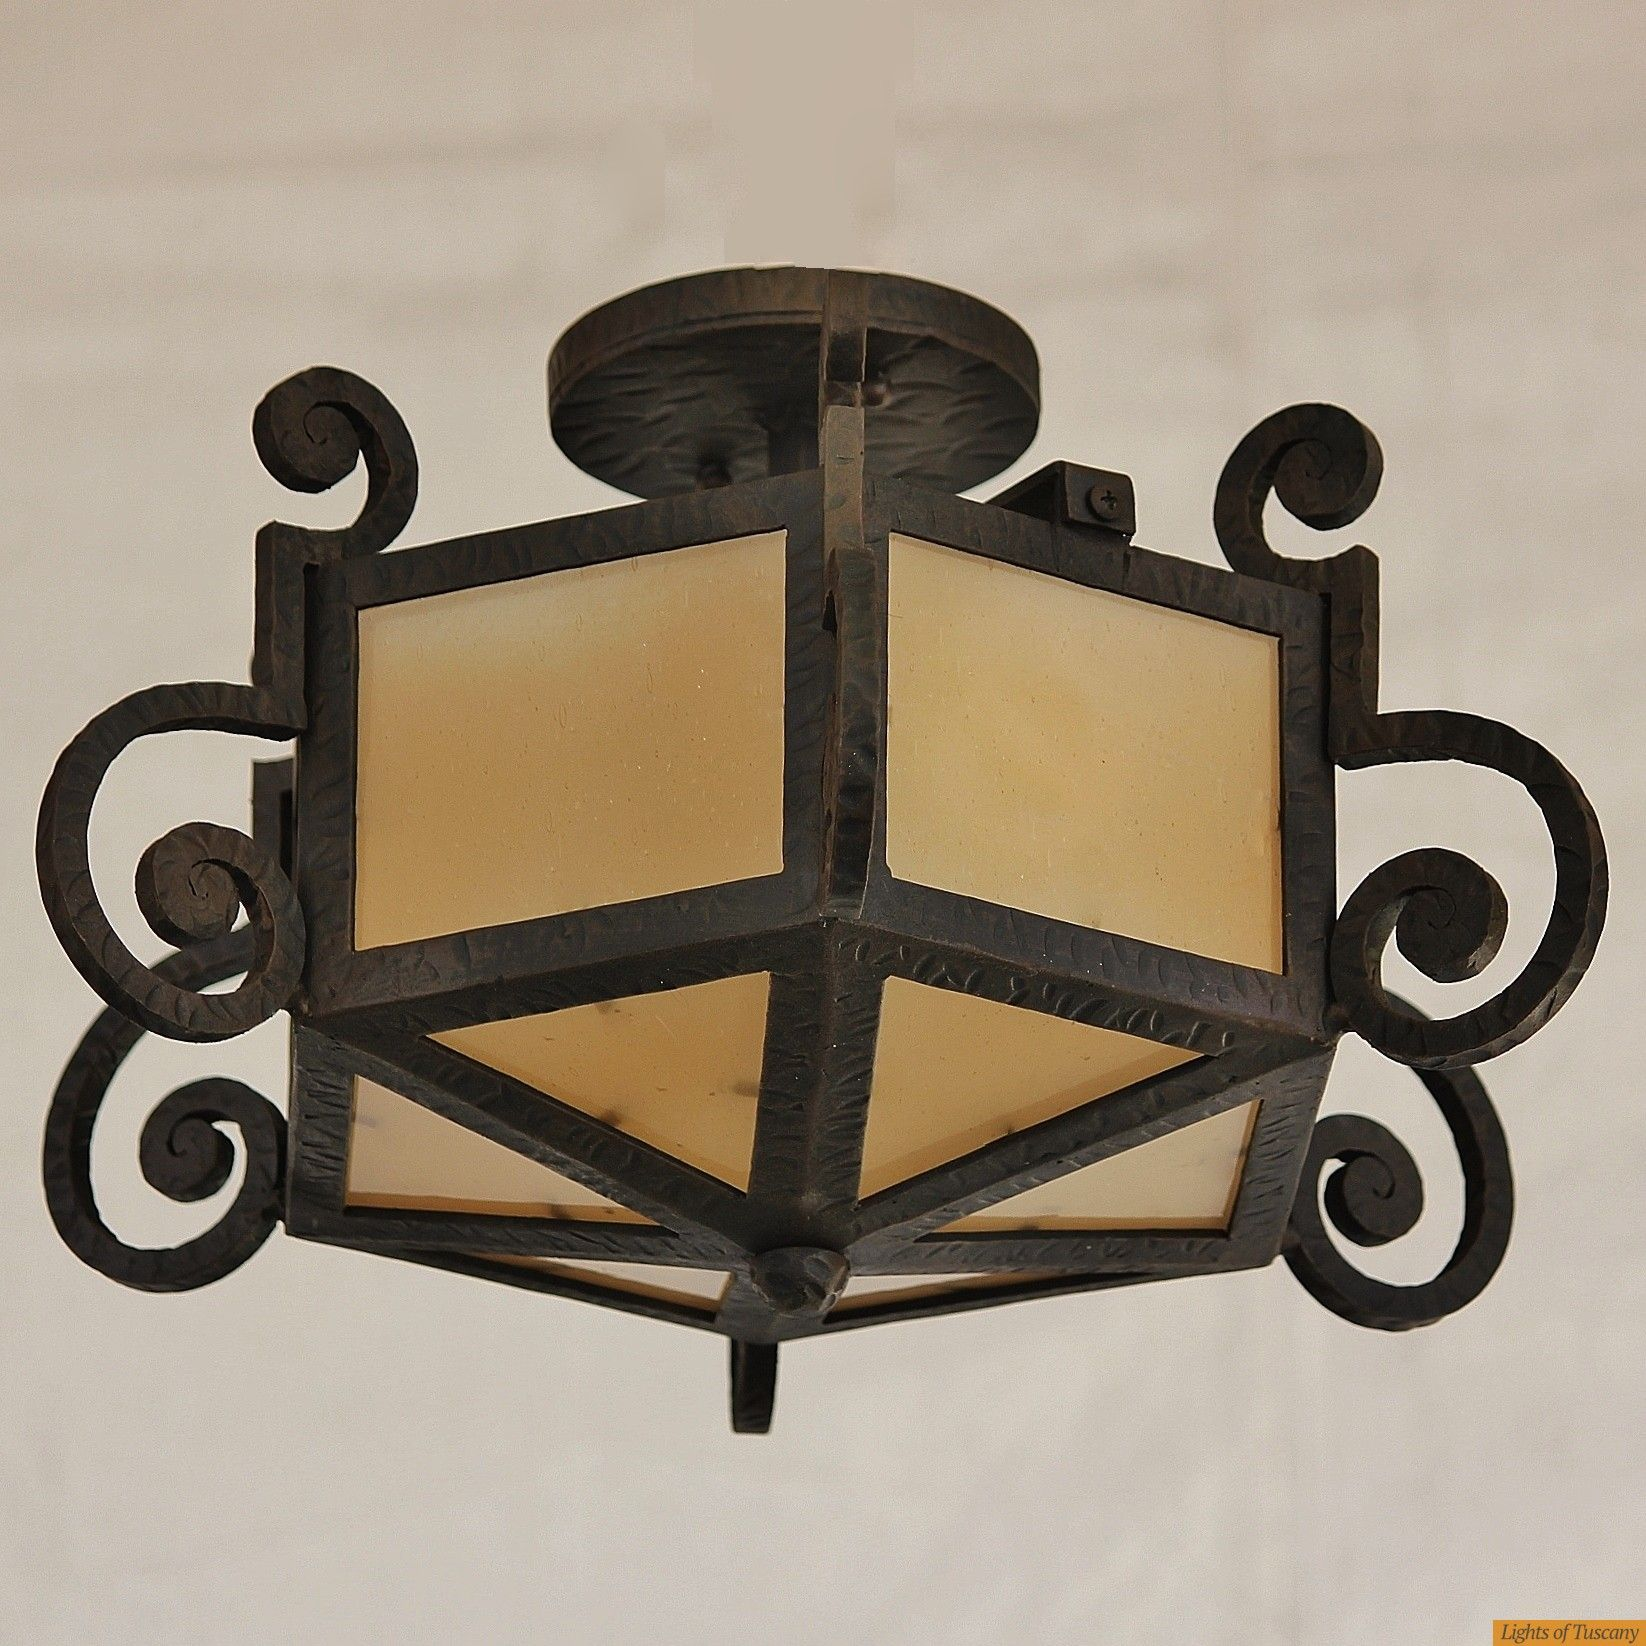 Spanish Style Ceiling Lights | Shapeyourminds.com